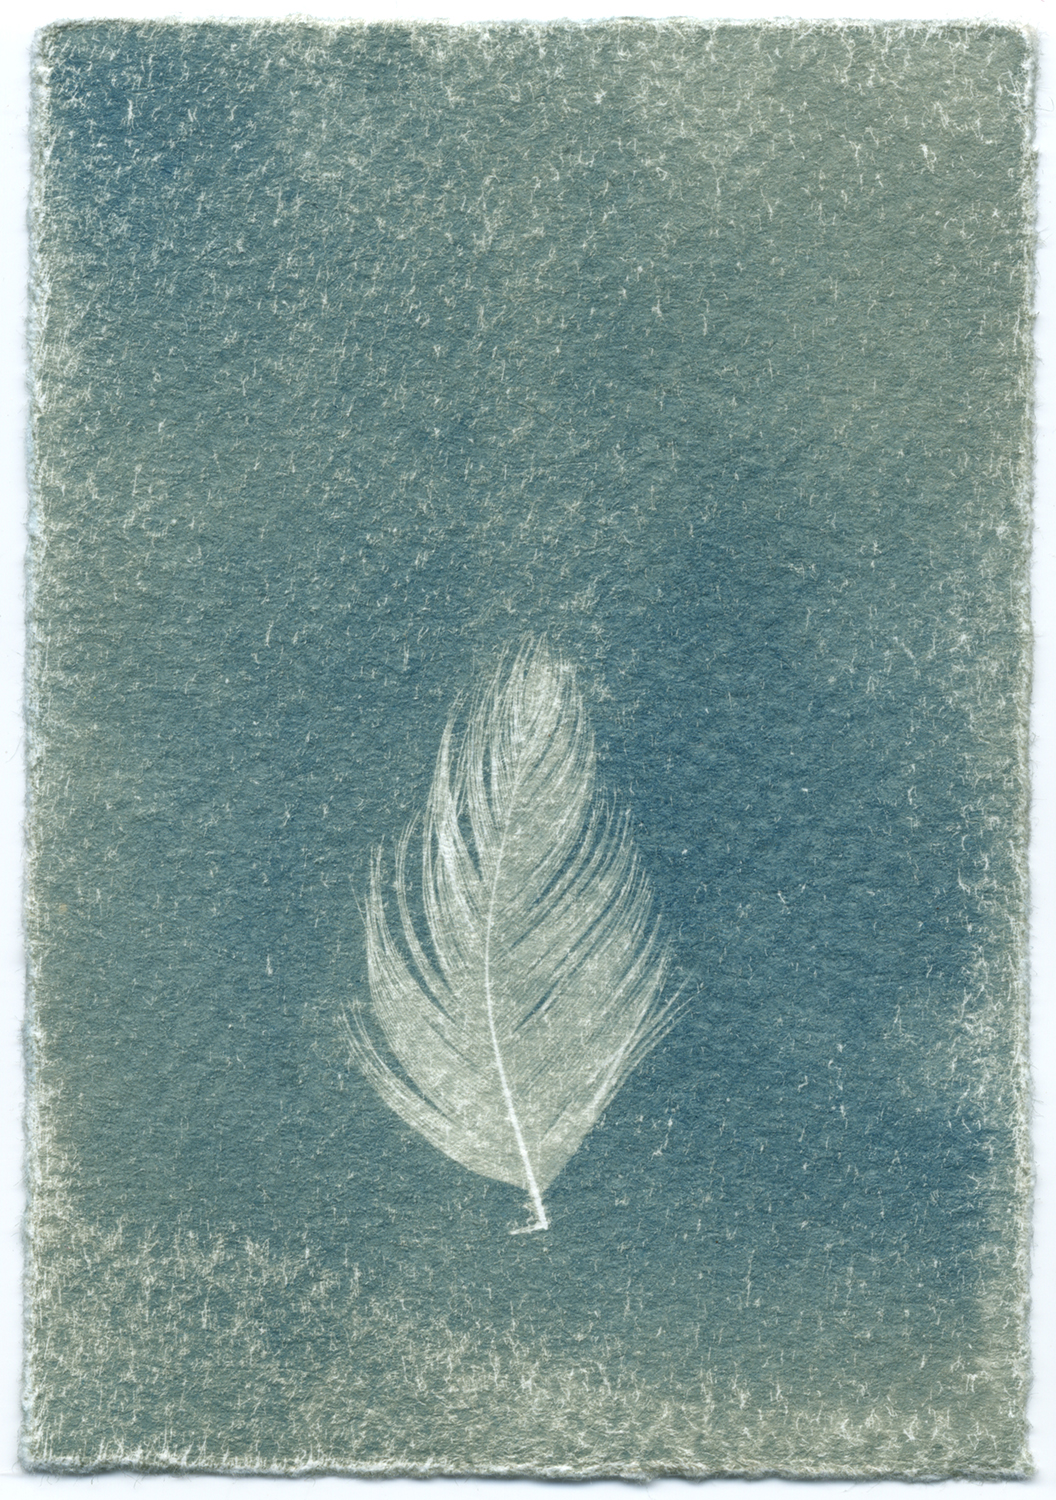 Feathers #14-1